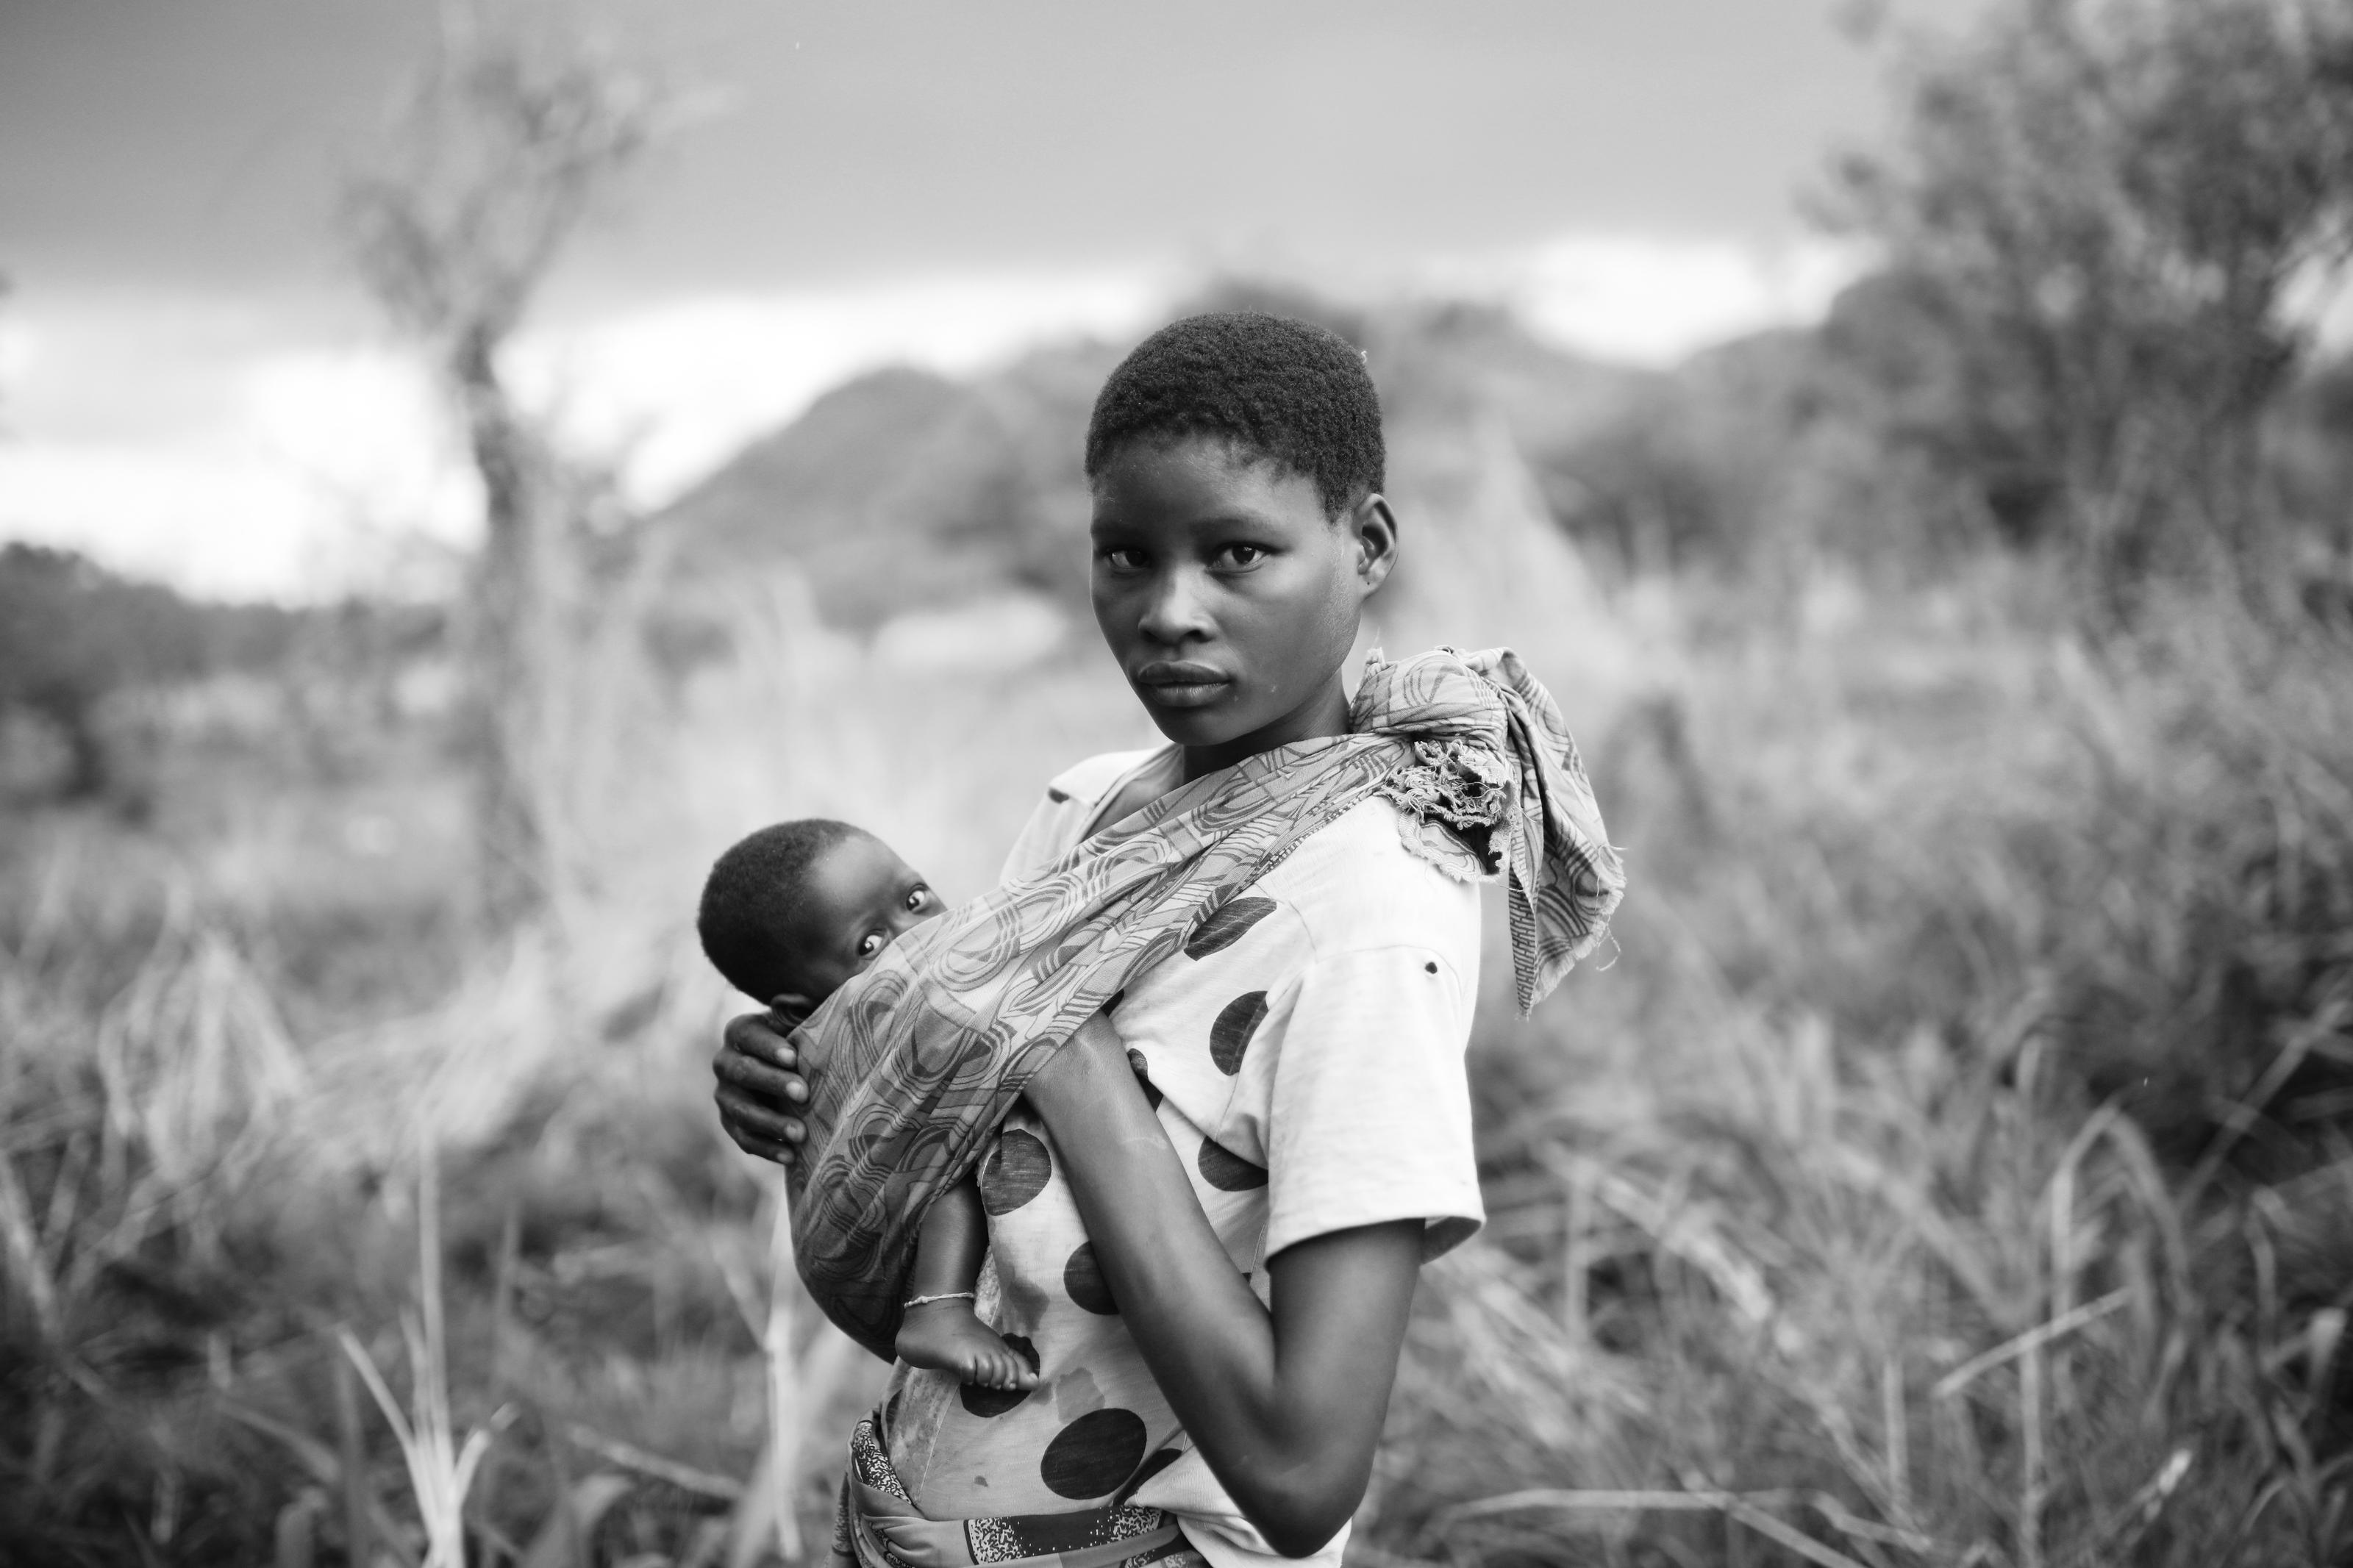 Angelina Bonifaciao, 18, with her daughter Irene in Sosina Masel, in the foothills of the Gurúè mountains, Mozambique, November 2017.